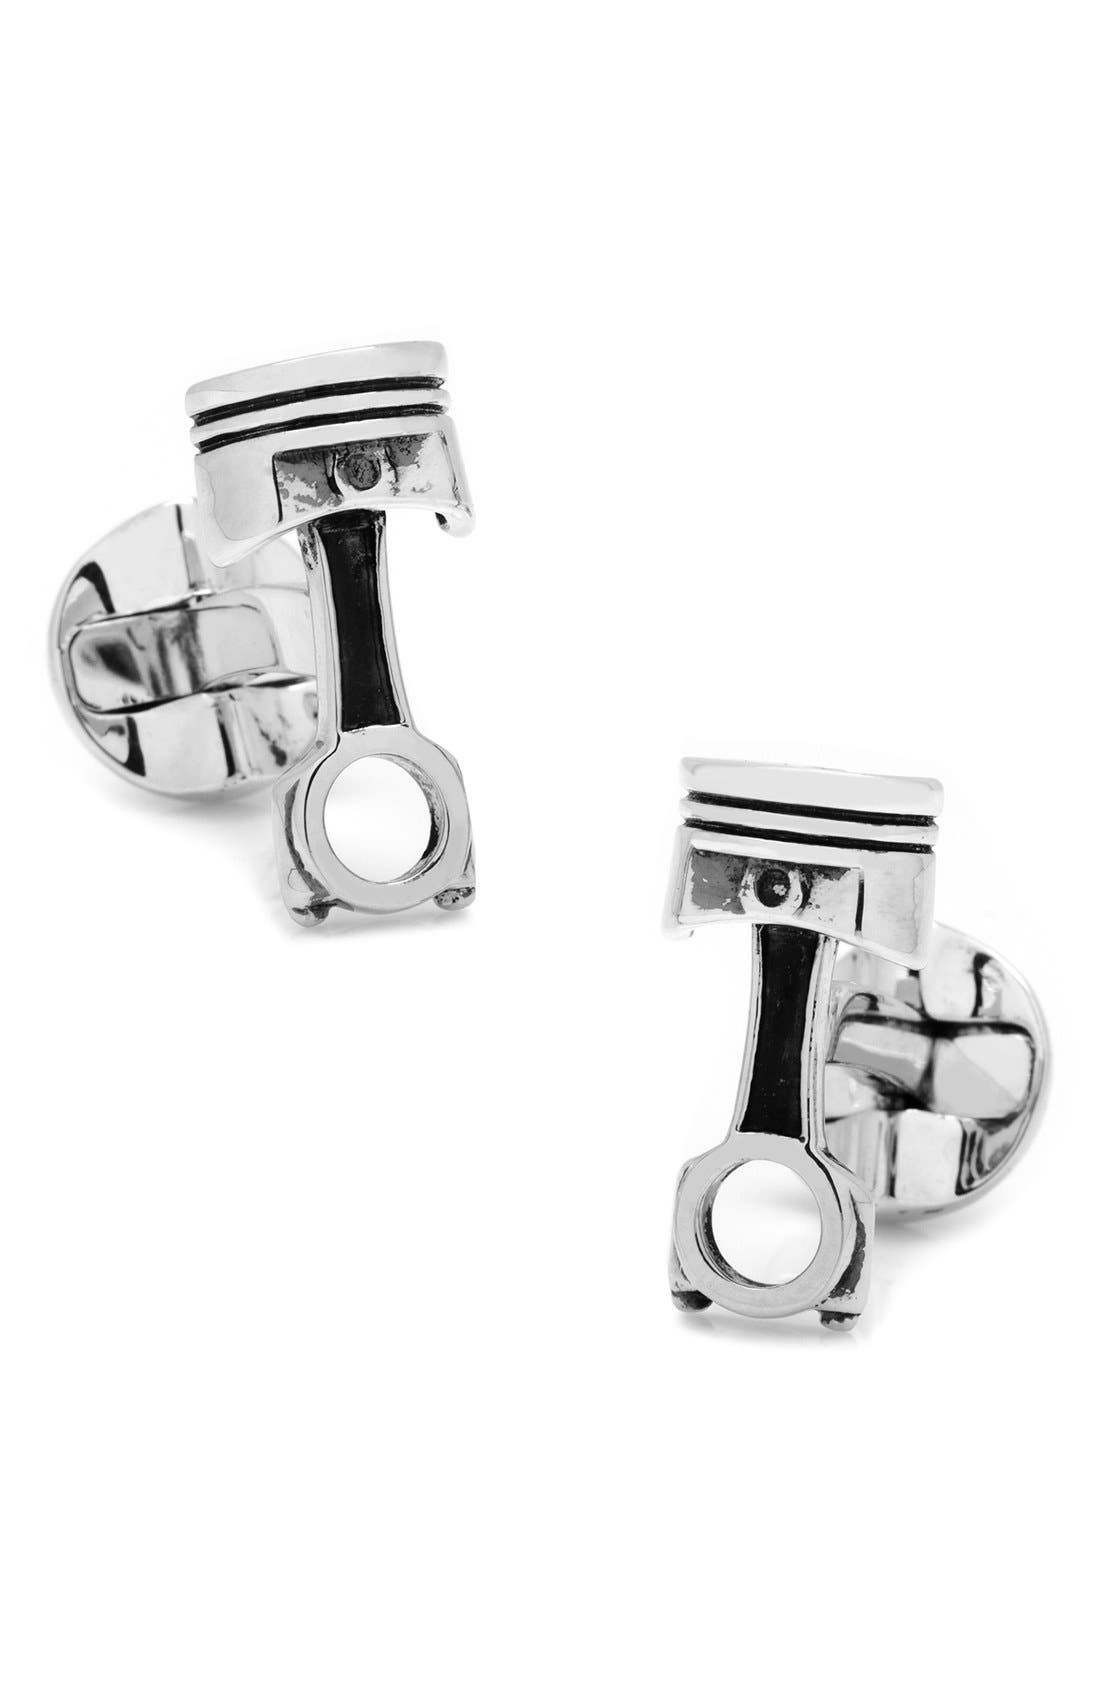 OX AND BULL TRADING CO. Piston Cuff Links